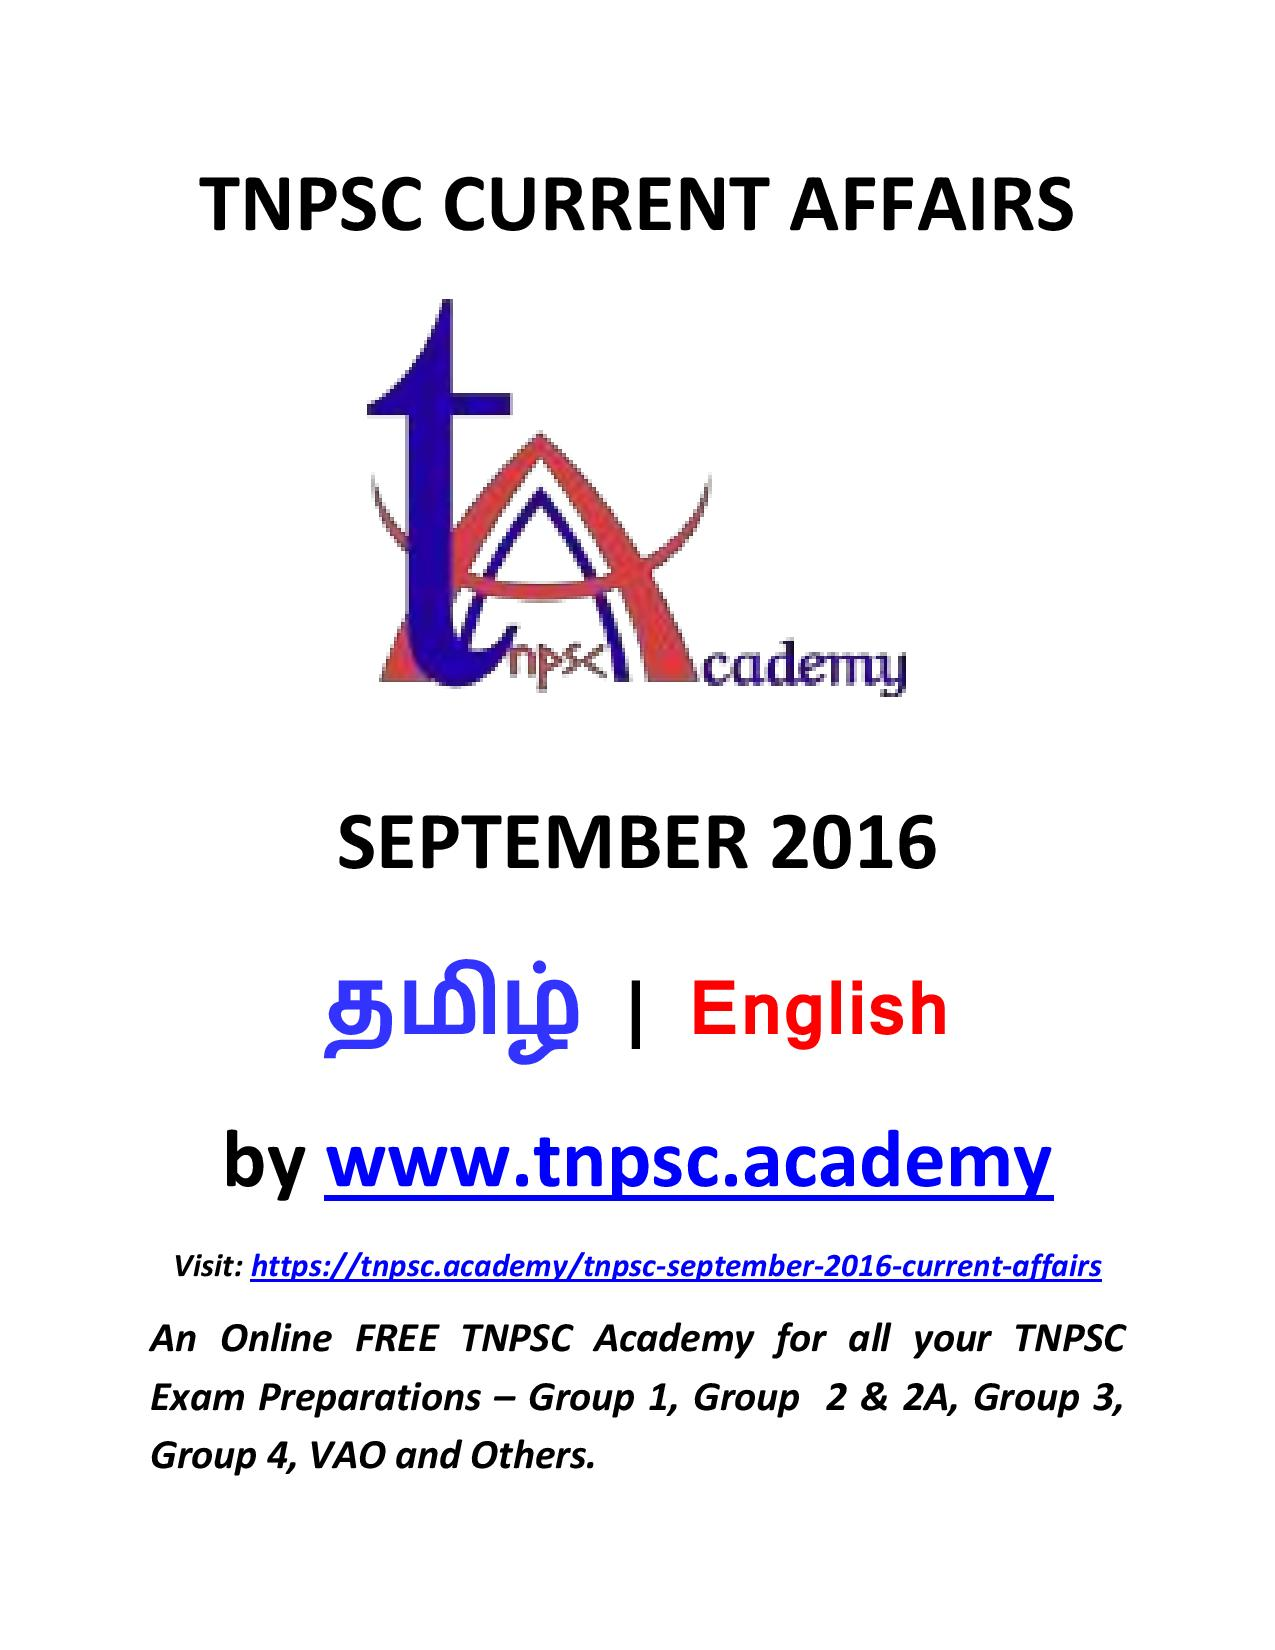 TNPSC September 2016 Current Affairs